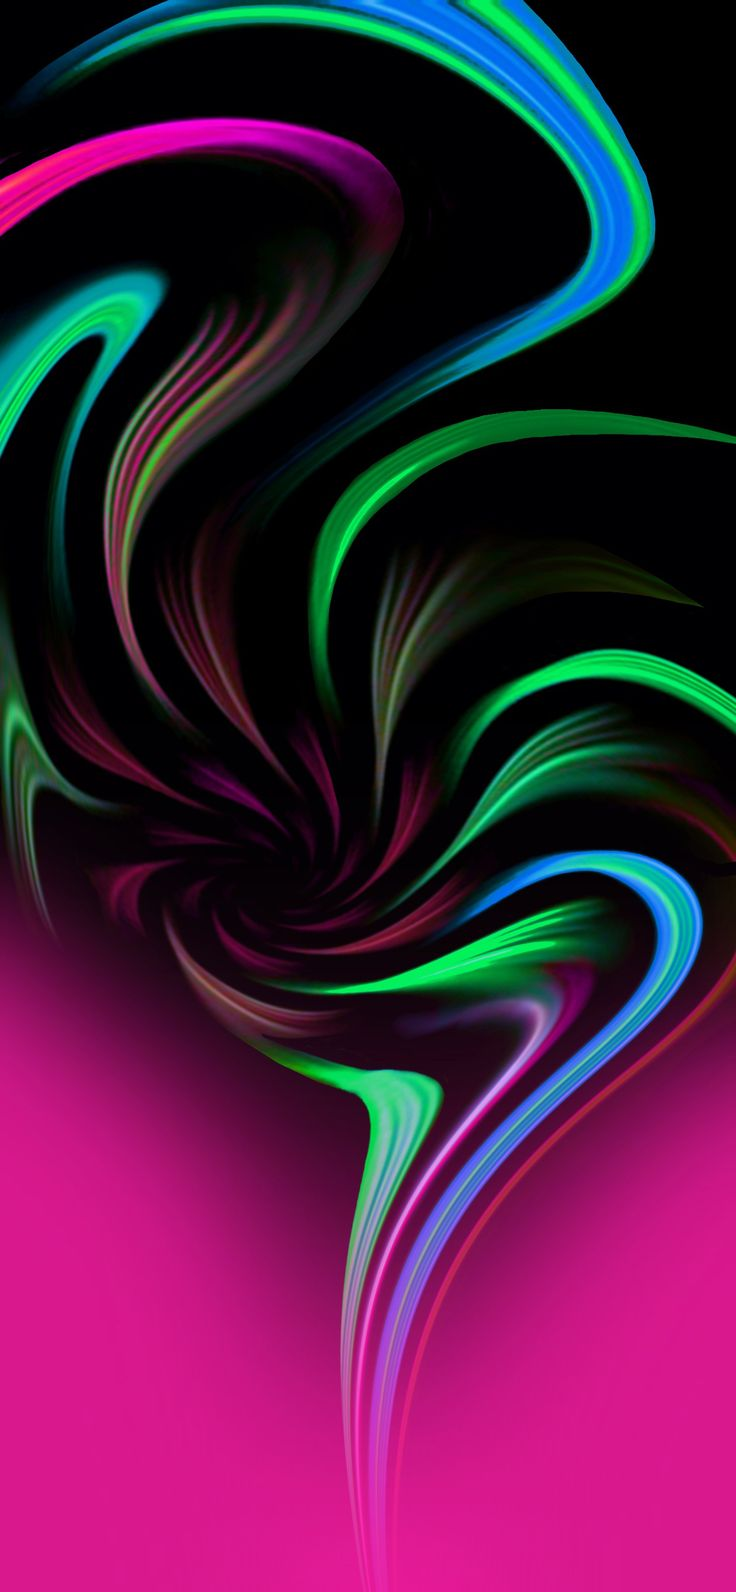 Abstract HD Wallpapers 163959242671033012 9